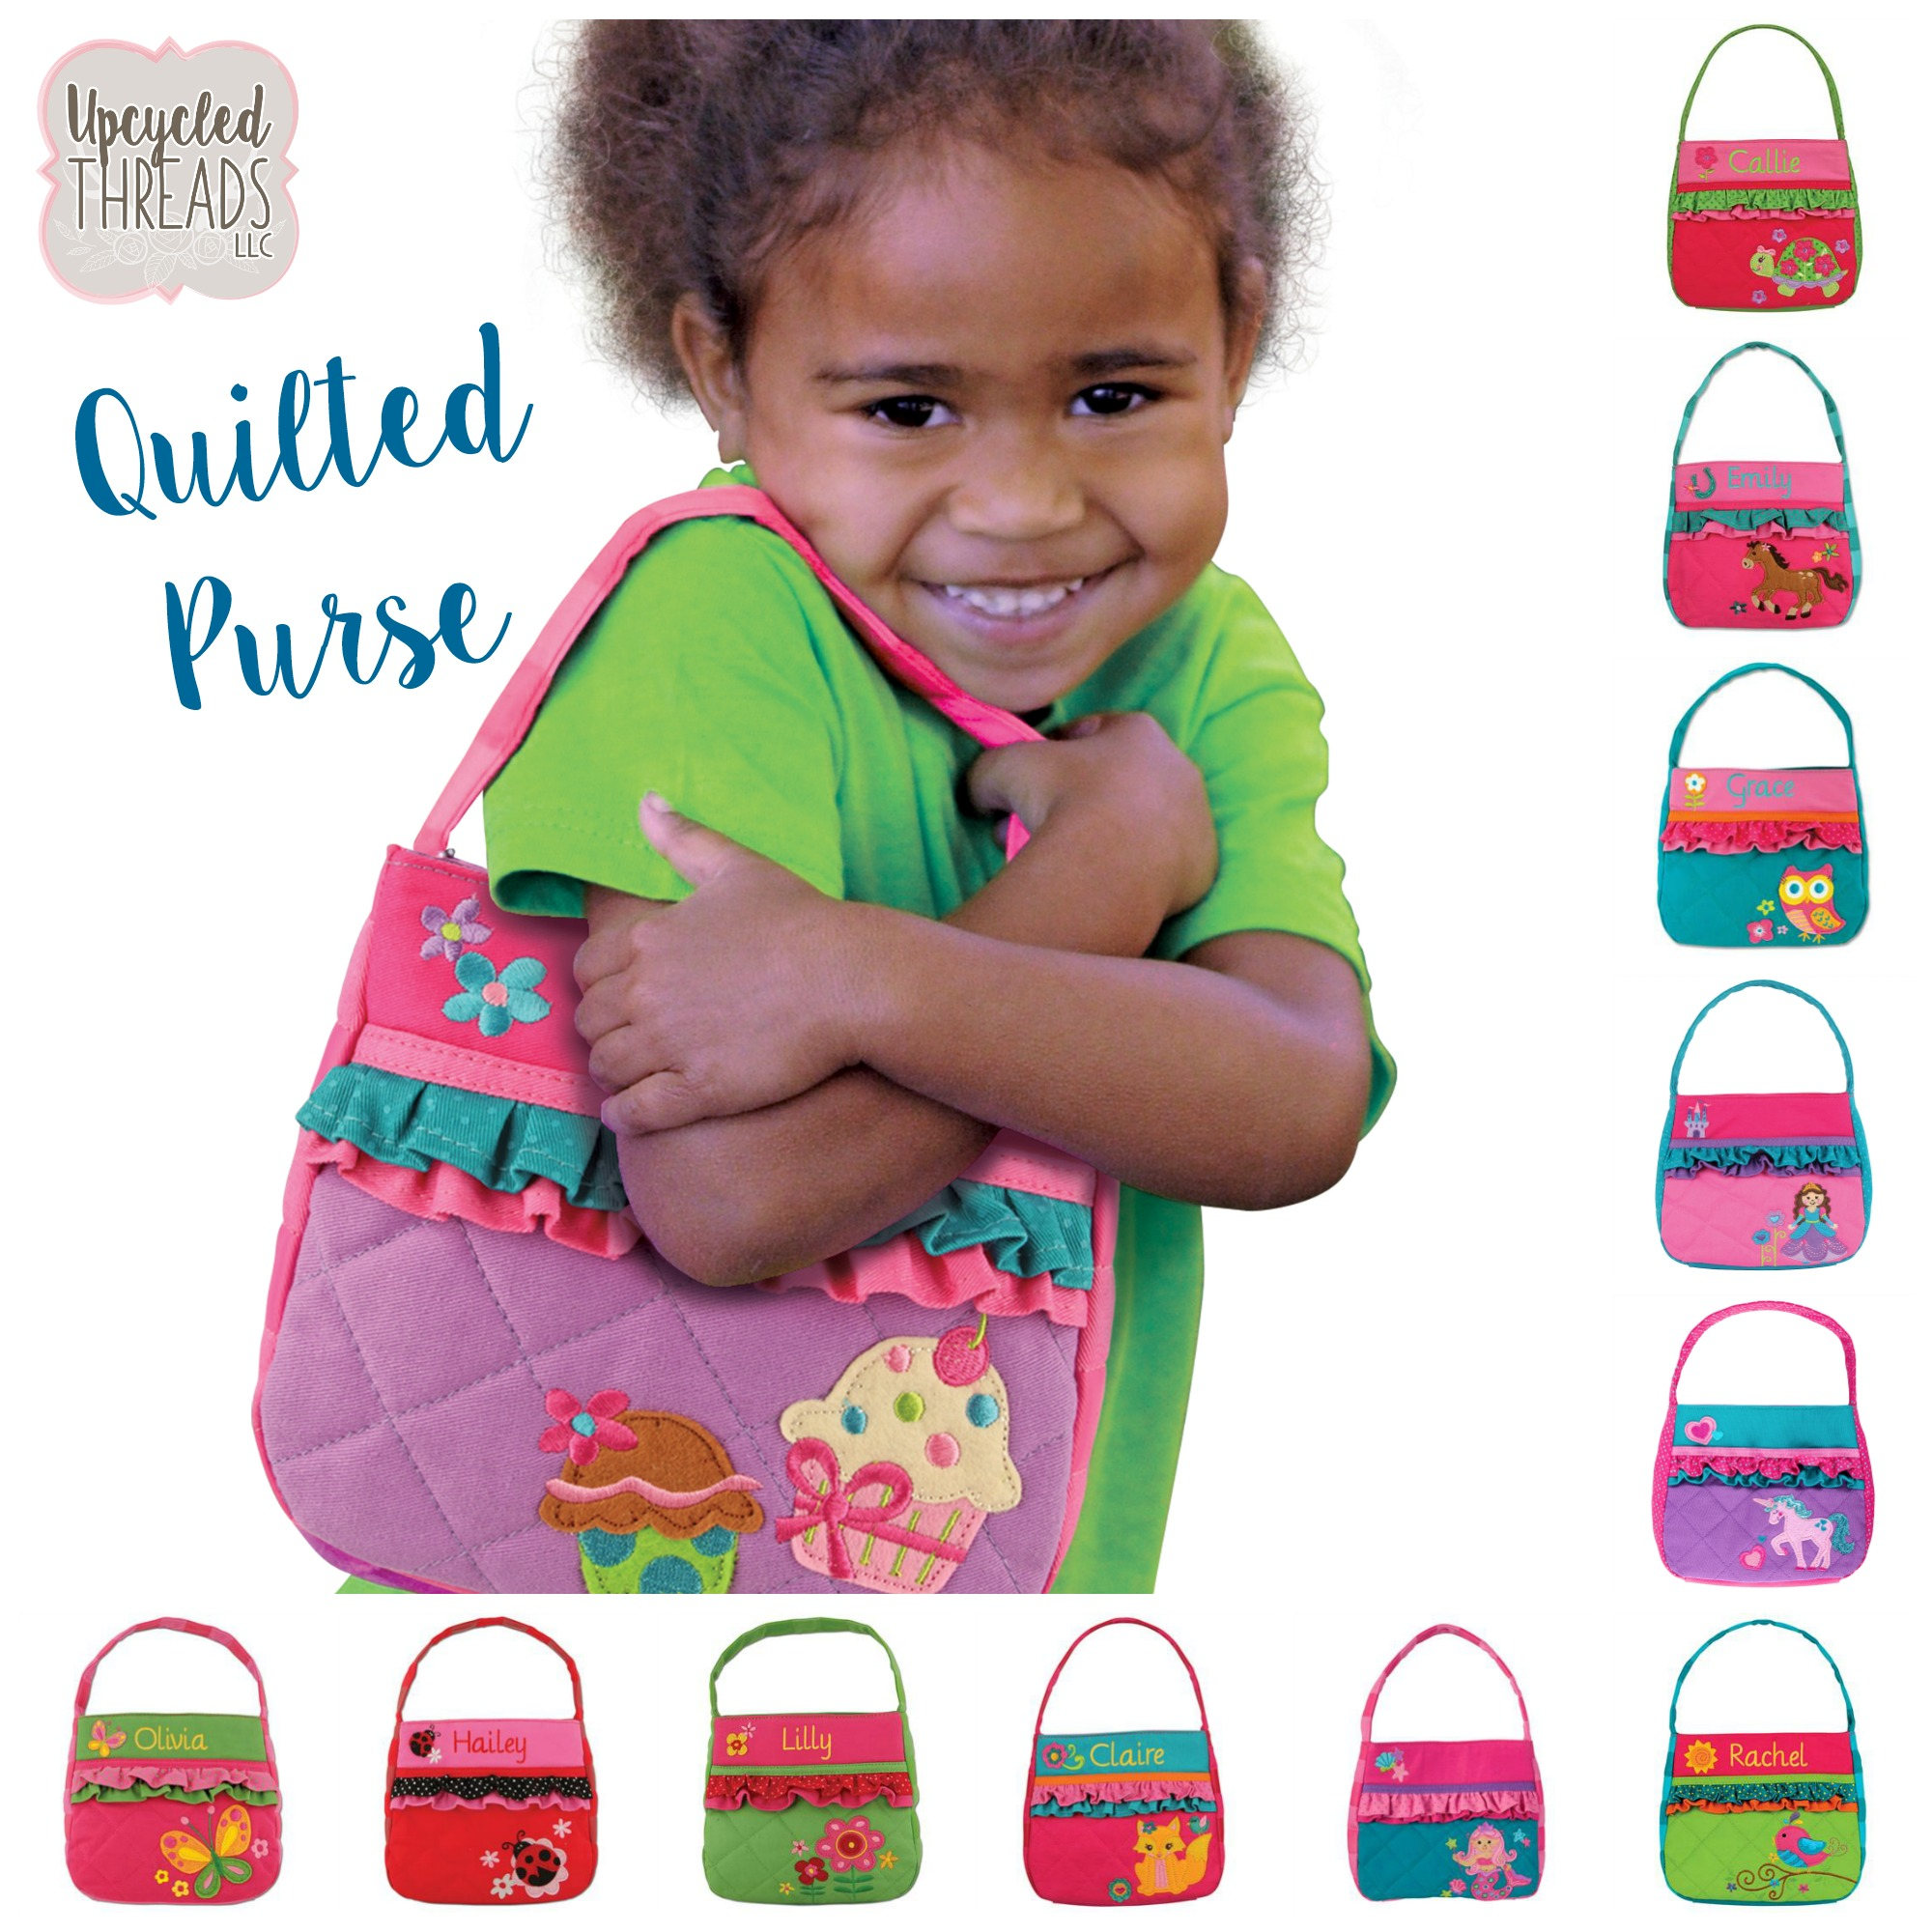 Toddler purse little girls purse easter present easter gift toddler purse little girls purse easter present easter gift stephen joseph purse cute girls purse girls birthday gift girls purse negle Choice Image